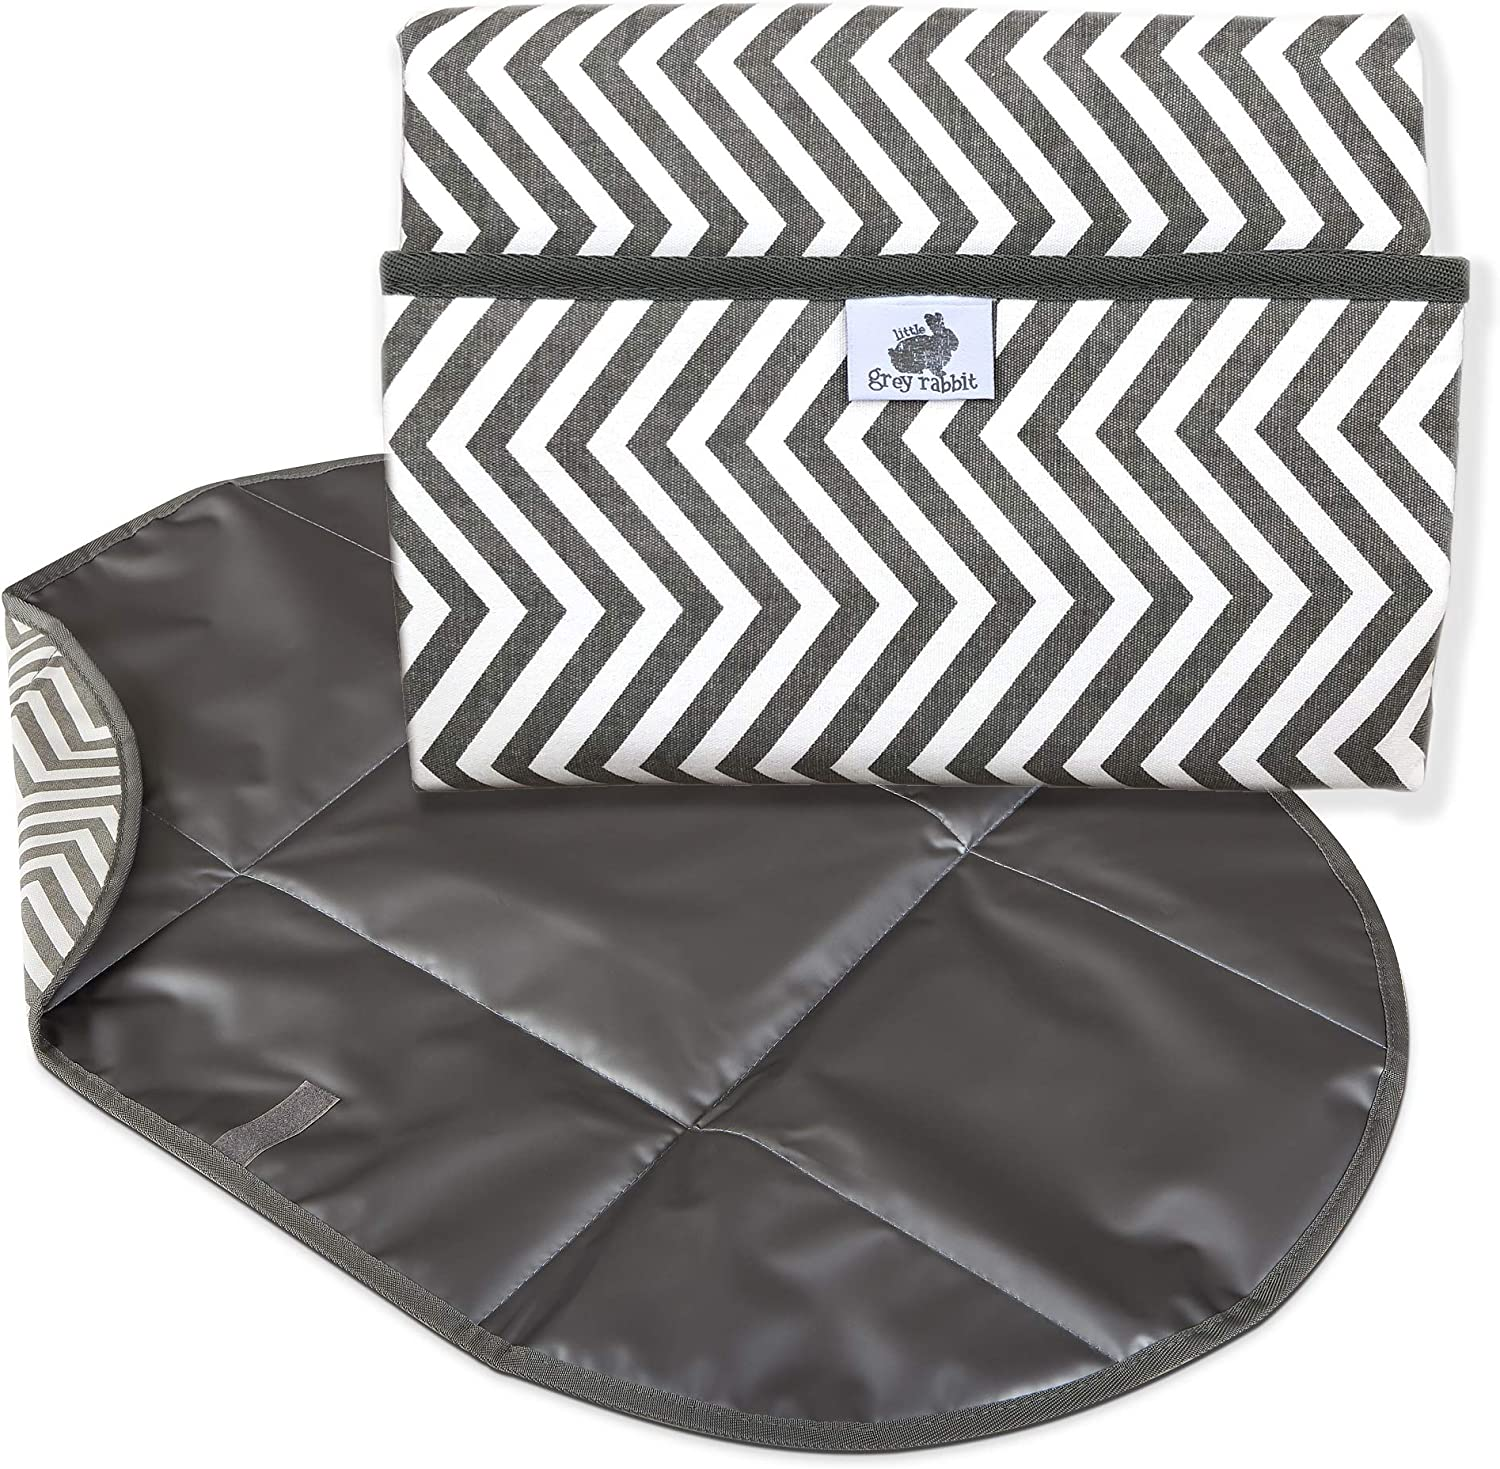 Quick Fold Diaper unisex Changing Pad by Baby Rabbit Max 61% OFF Grey Little Nurs